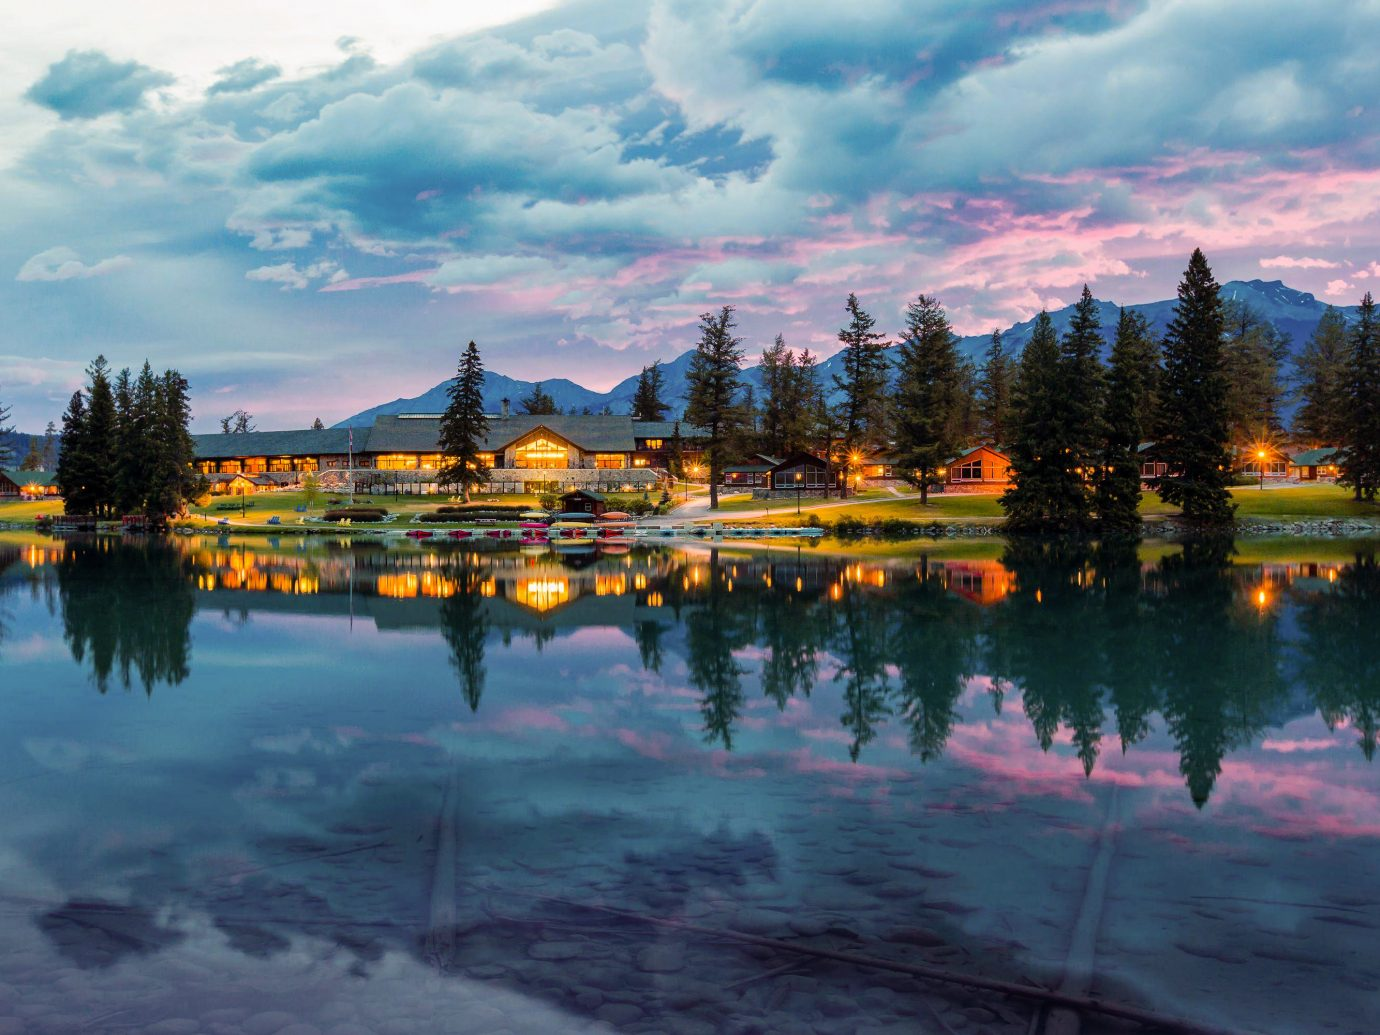 Alberta Boutique Hotels Canada Road Trips Reflection Nature Sky Water Lake Tree Cloud Mountain Evening